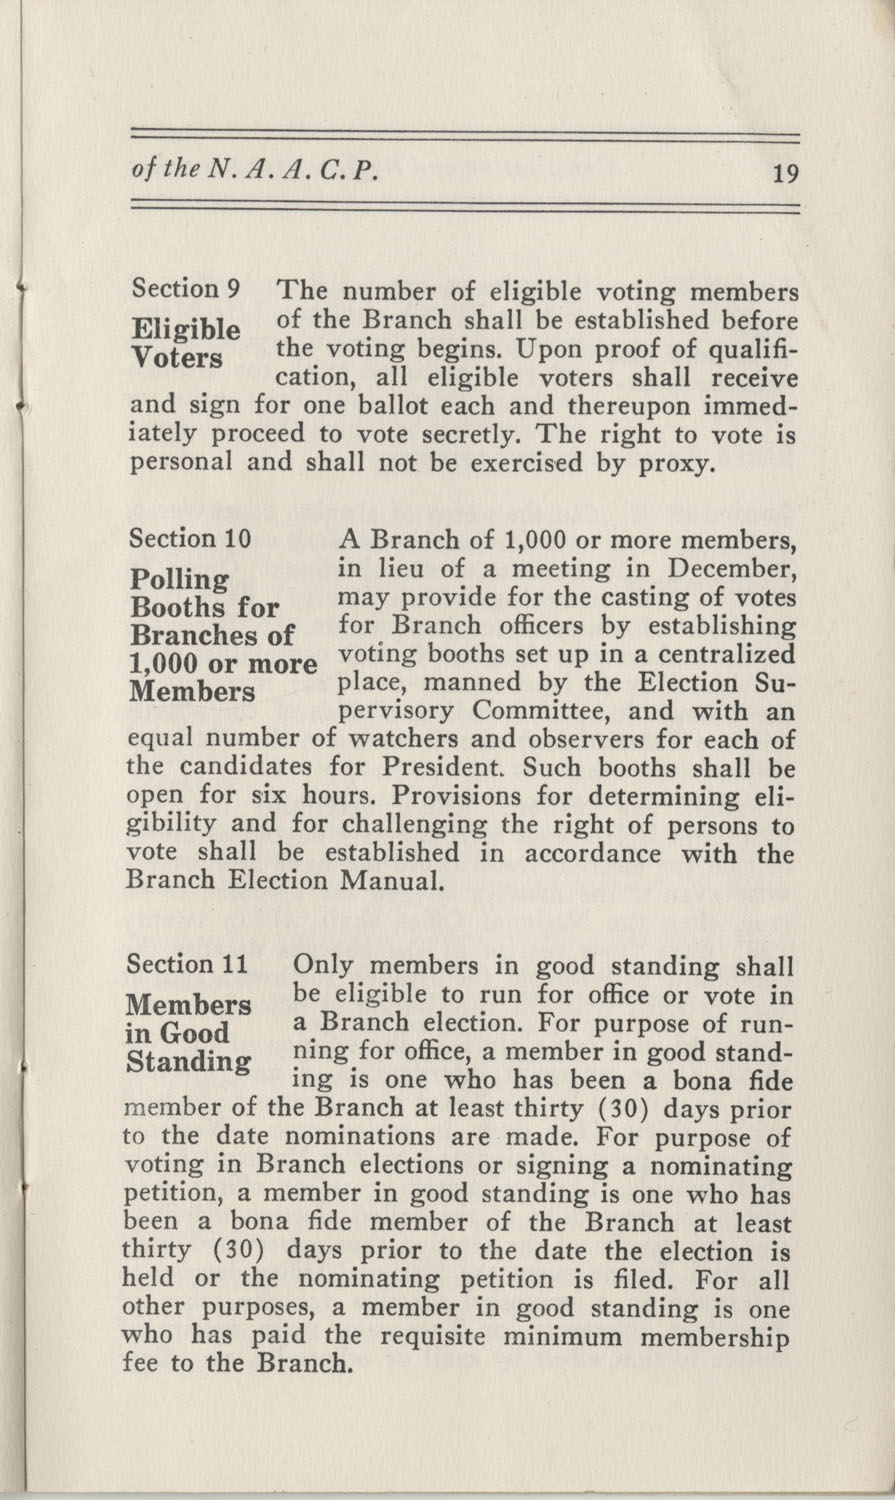 Constitutions and By-Laws, September 1960, Page 19